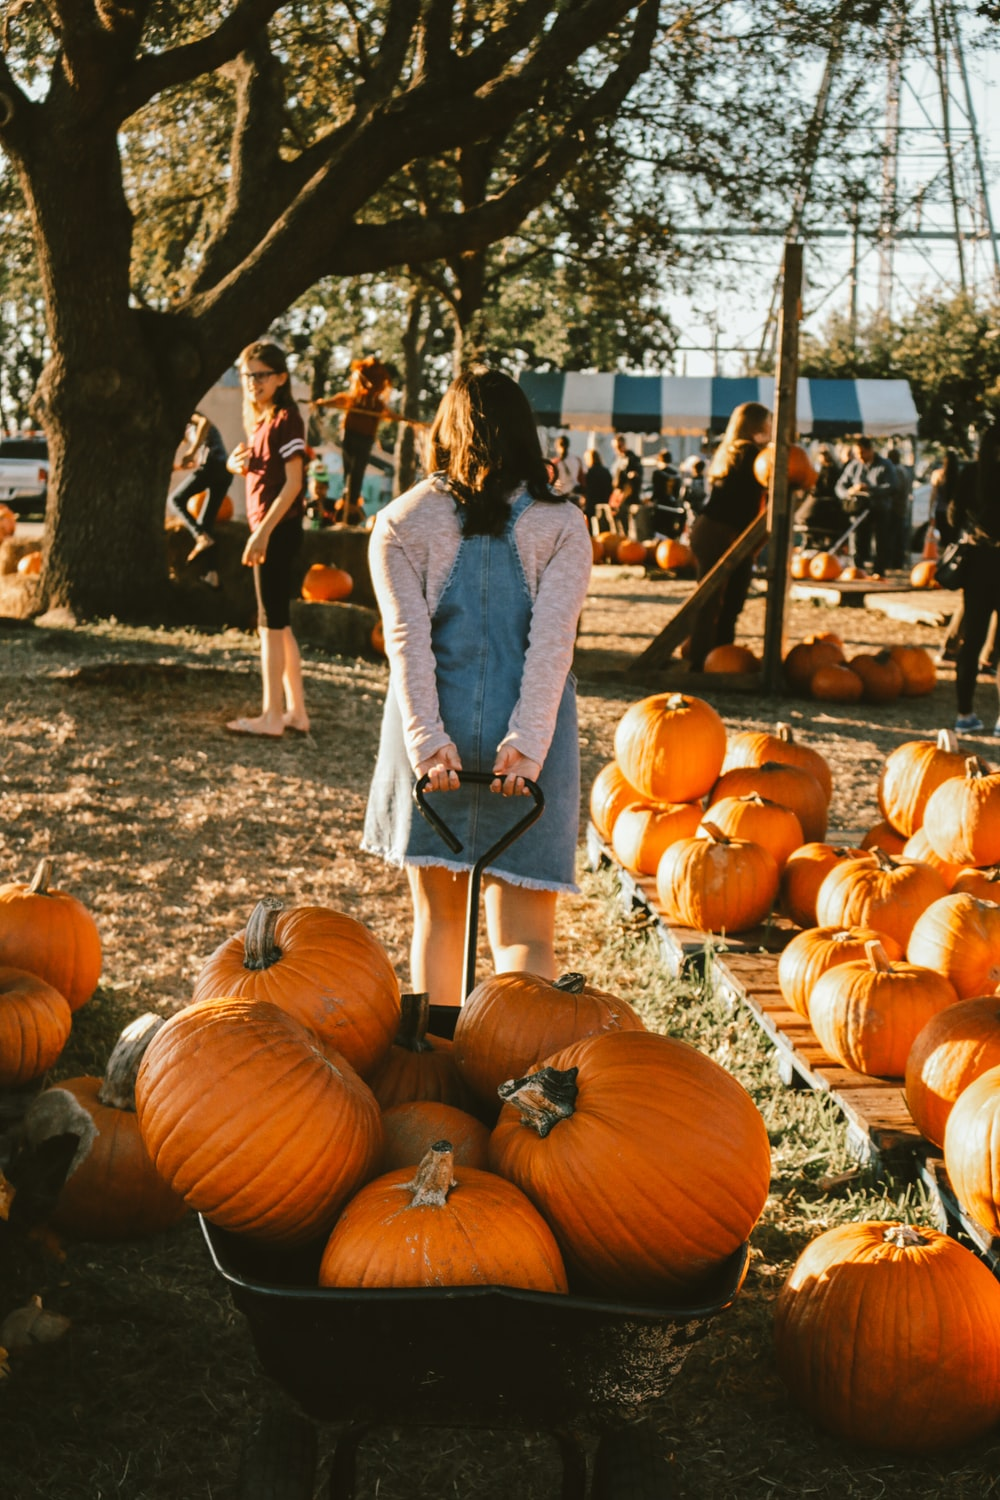 woman pulling wagon with pumpkins